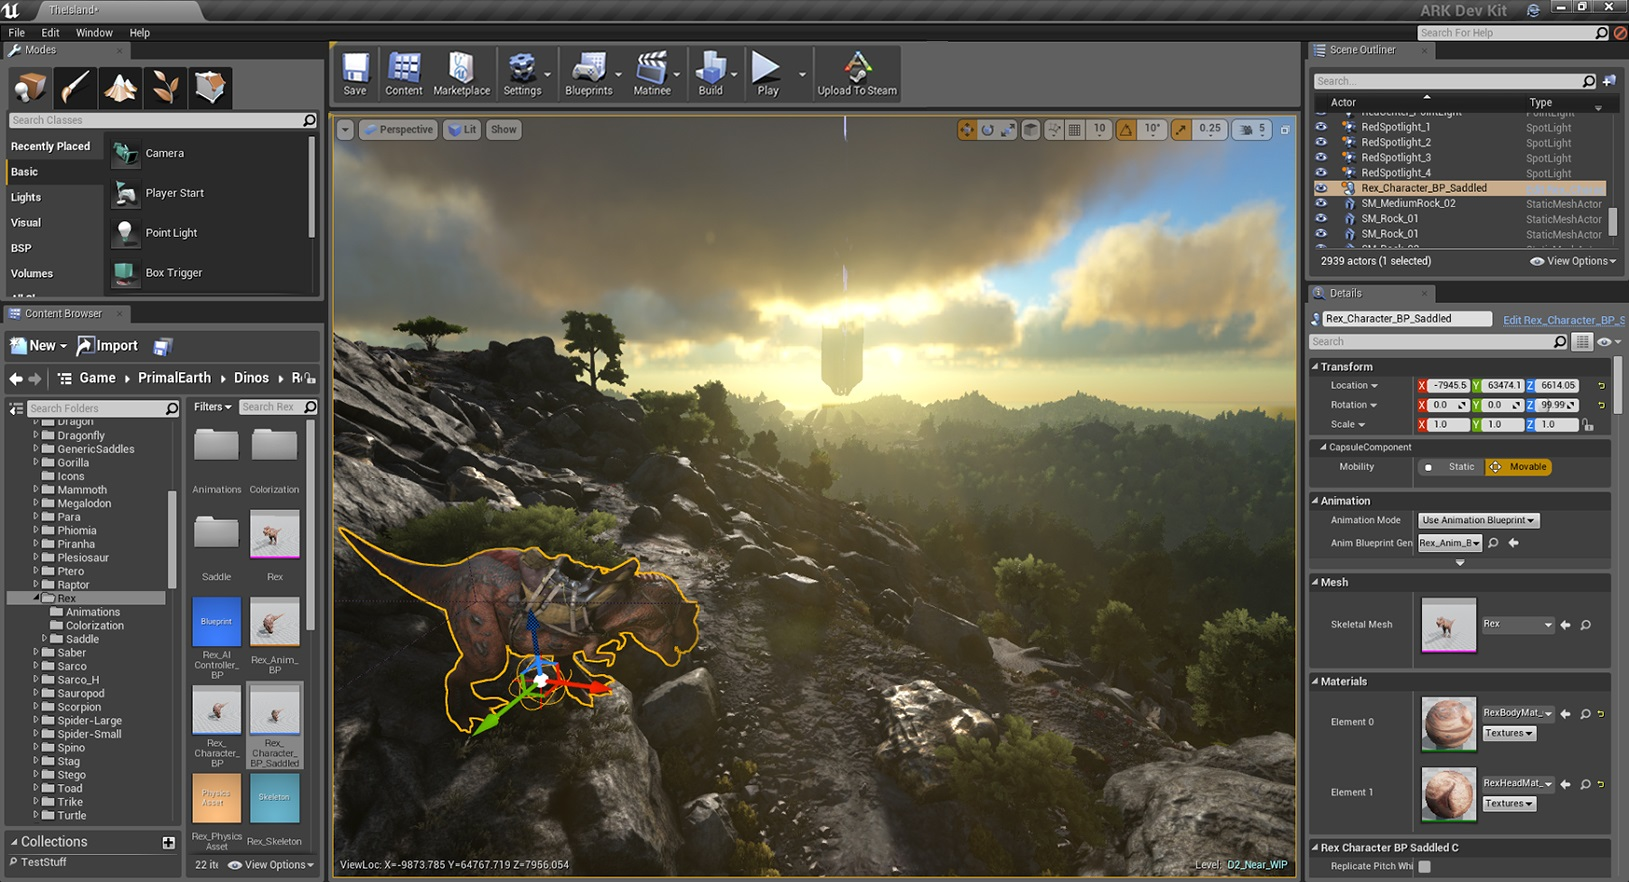 Ark survival evolved now open to unreal engine 4 modding mmohuts ark survival evolved now open to unreal engine 4 modding malvernweather Choice Image